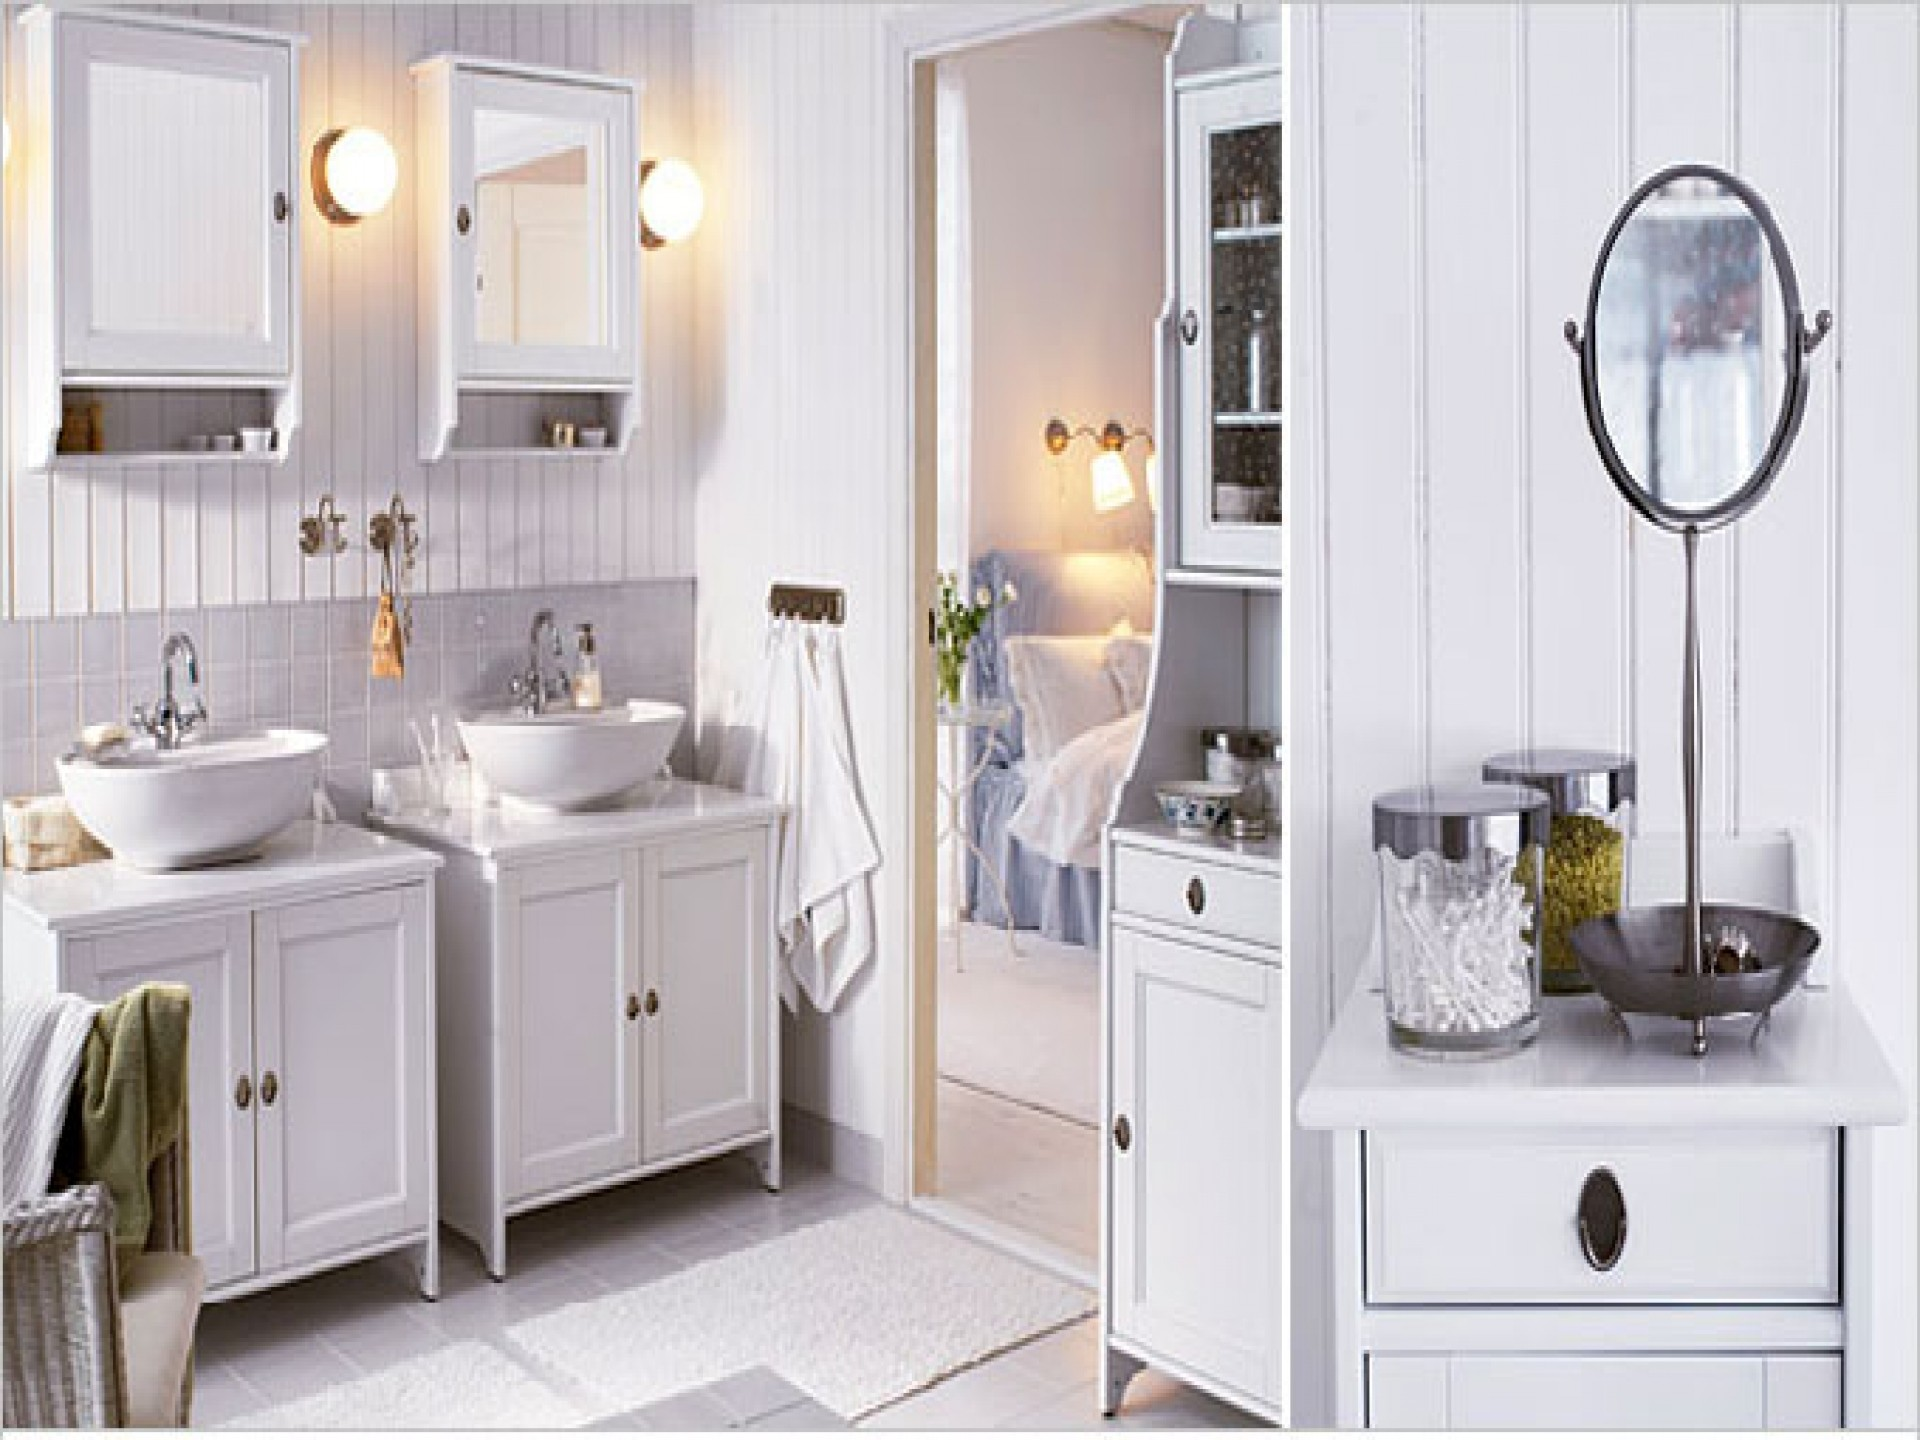 wonderful-white-wood-glass-cool-design-ikea-bathroom-ideas-wall-mirror-cabinet-sink-cabinet-display-cabinet-wall-lamp-interior-at-bathroom-as-well-as-bathroom-mirrors-plus-ikea-bathrooms-ideas